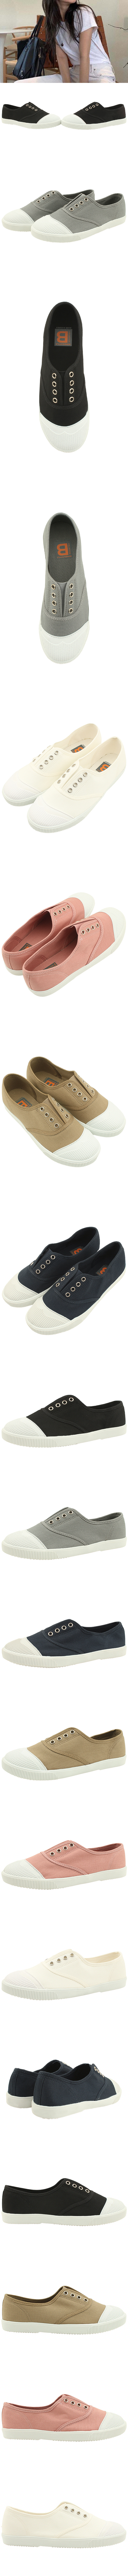 Canvas Shoes Cotton Casual Running Shoes Black